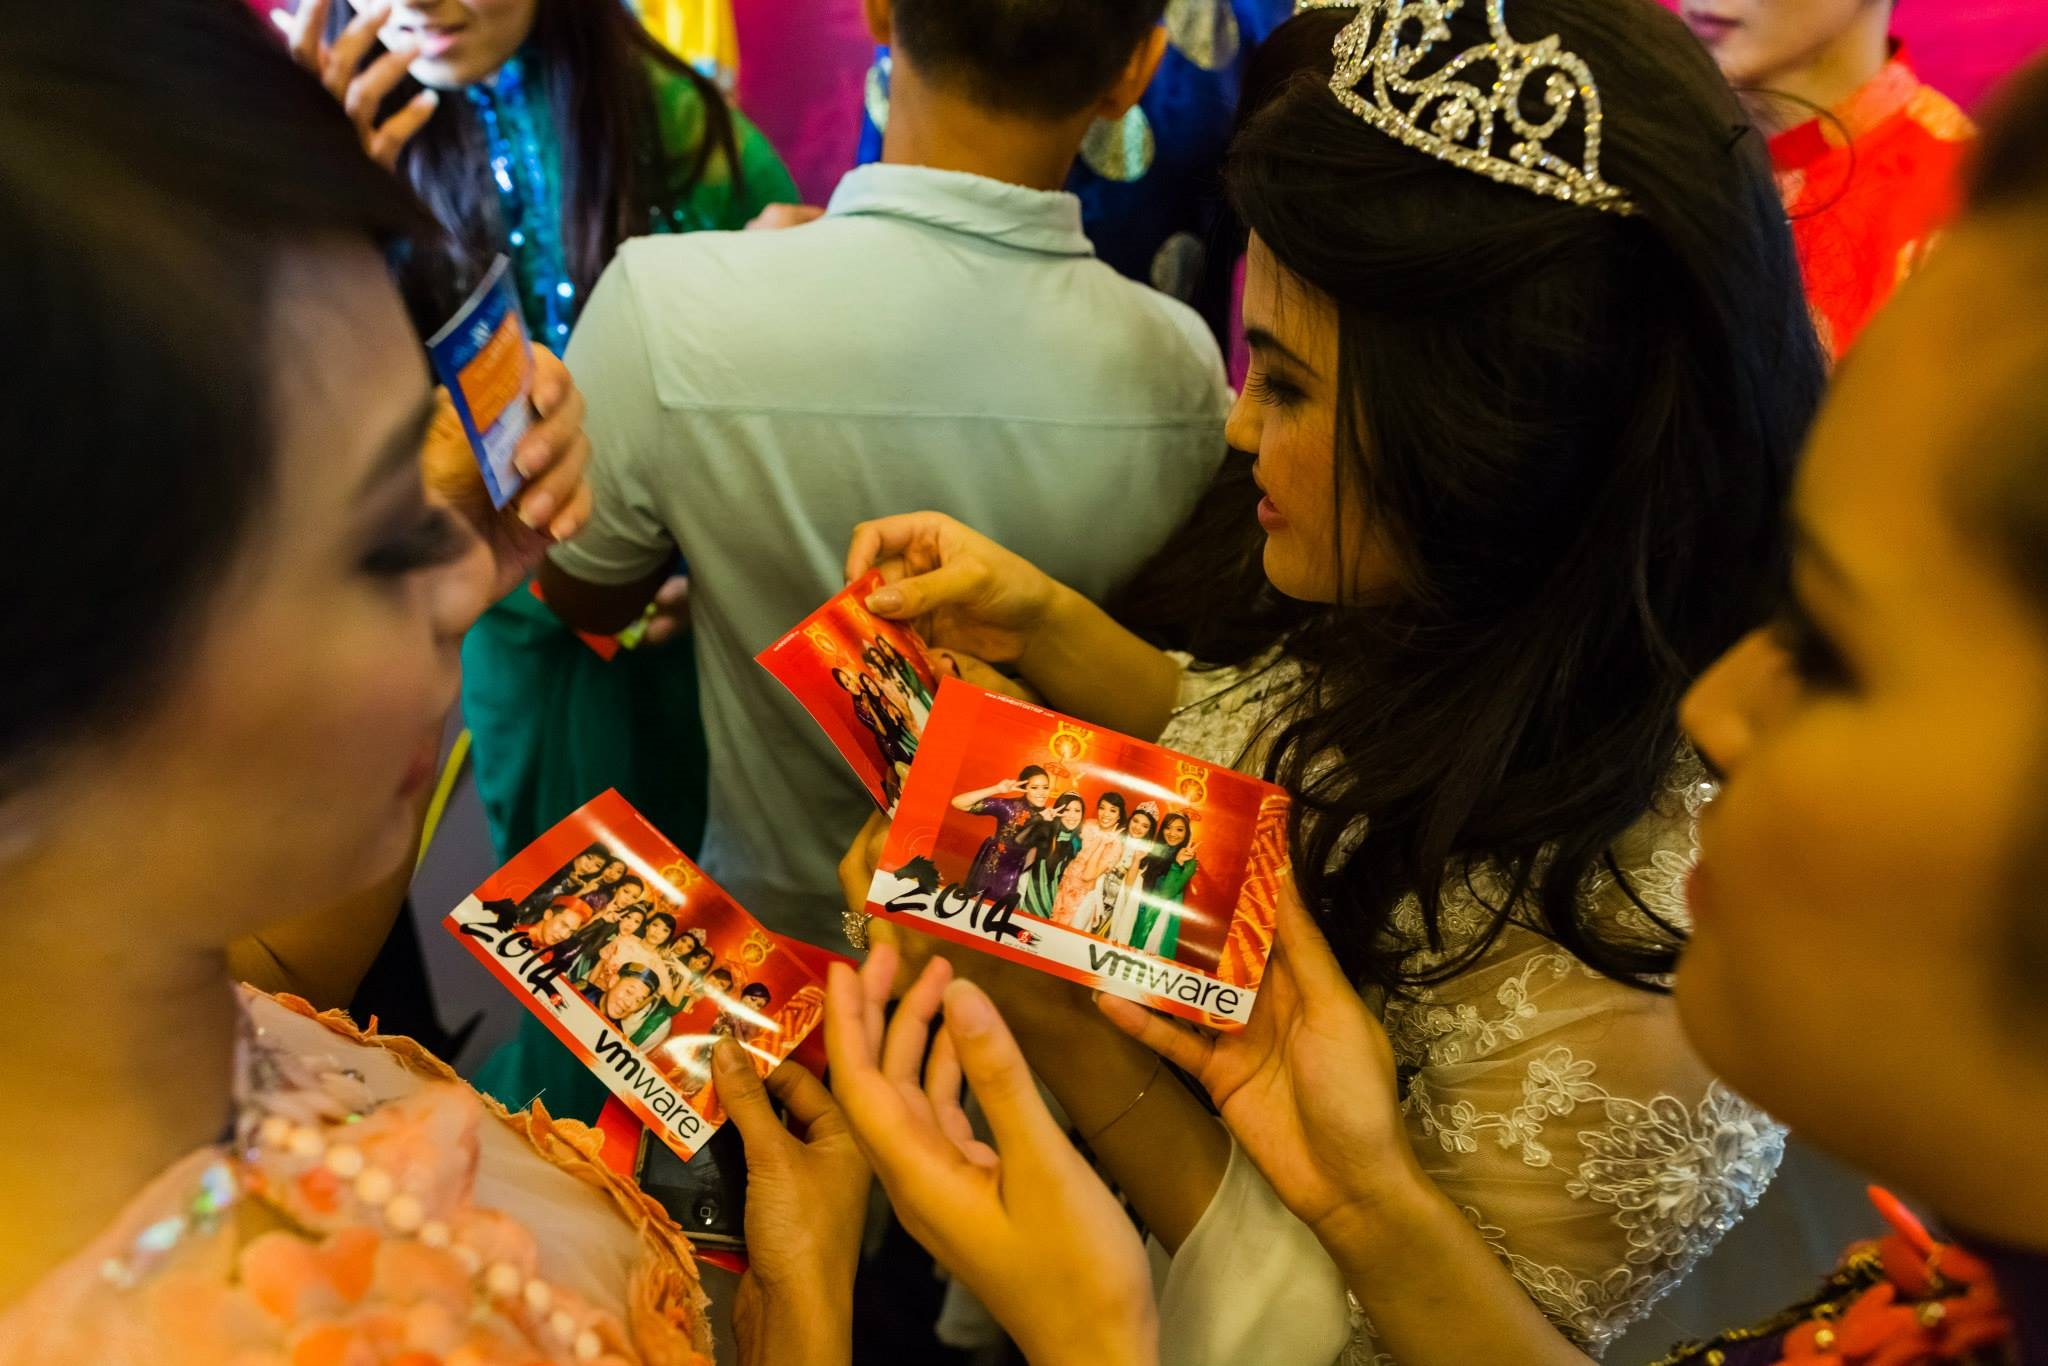 We rang in Lunar New Year 2014 with a dragon dance, calligraphy art stations, an employee fashion show, photo booths, special guest Miss California and delicious food.